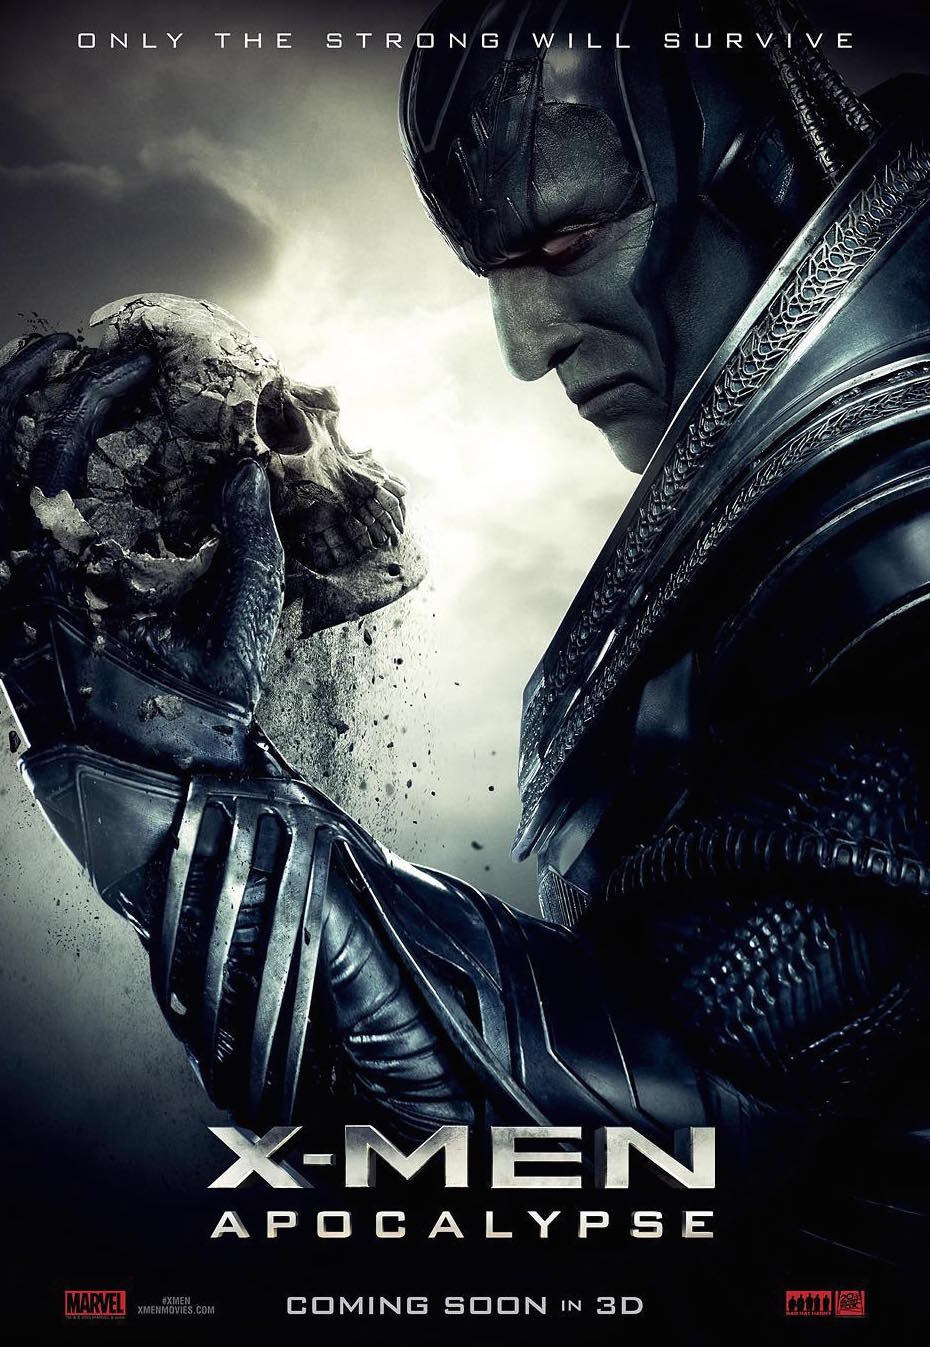 """X-Men: Apocalypse (2016) """"Only the Strong Will Survive""""   Credit: Marvel & 20th Century Fox"""